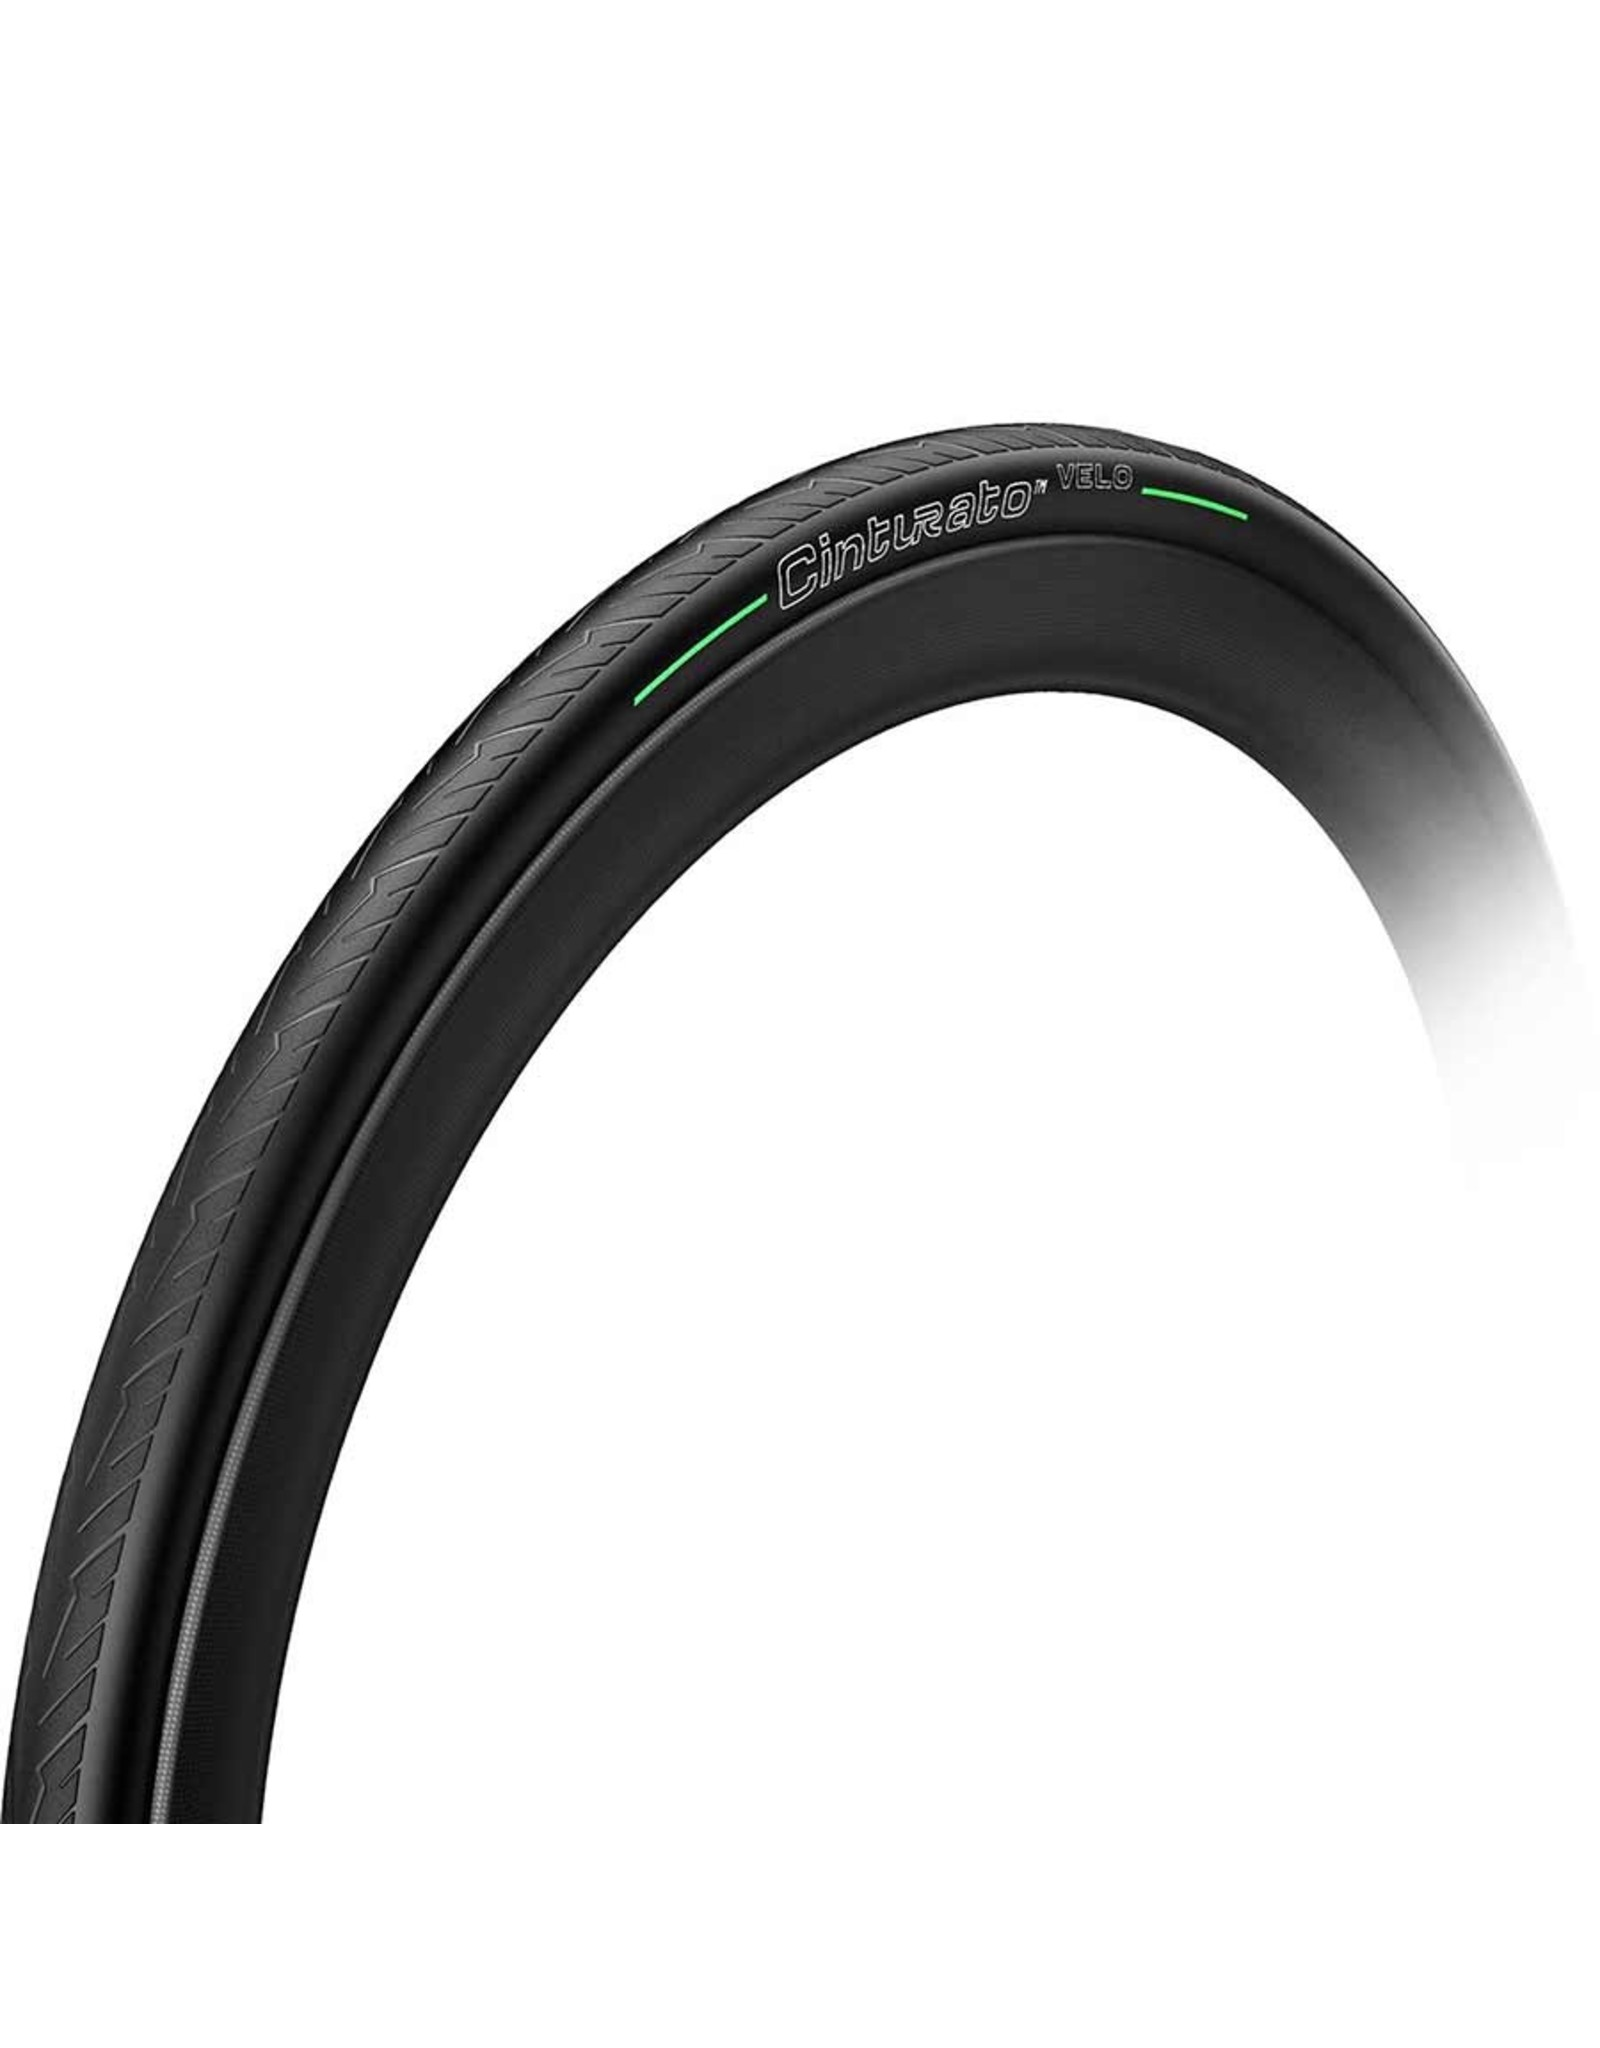 Pirelli, Cinturato Velo, Tire, 700x28C, Folding, Tubeless Ready, Smartnet Silica, 66TPI, Black